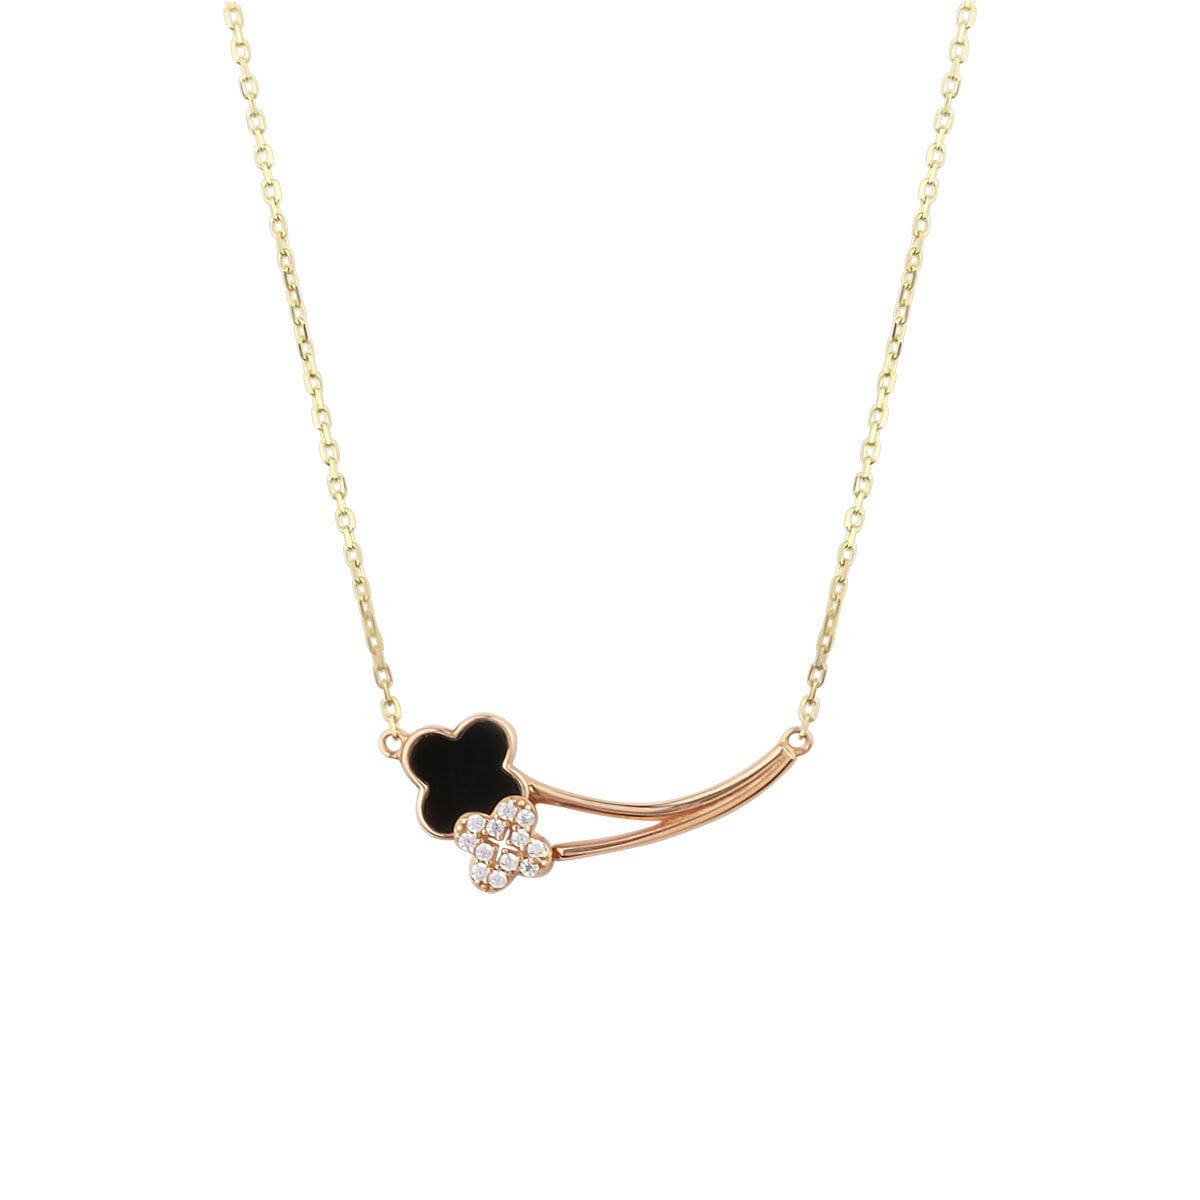 Cali Journey 18ct Rose Gold Pendant Necklace